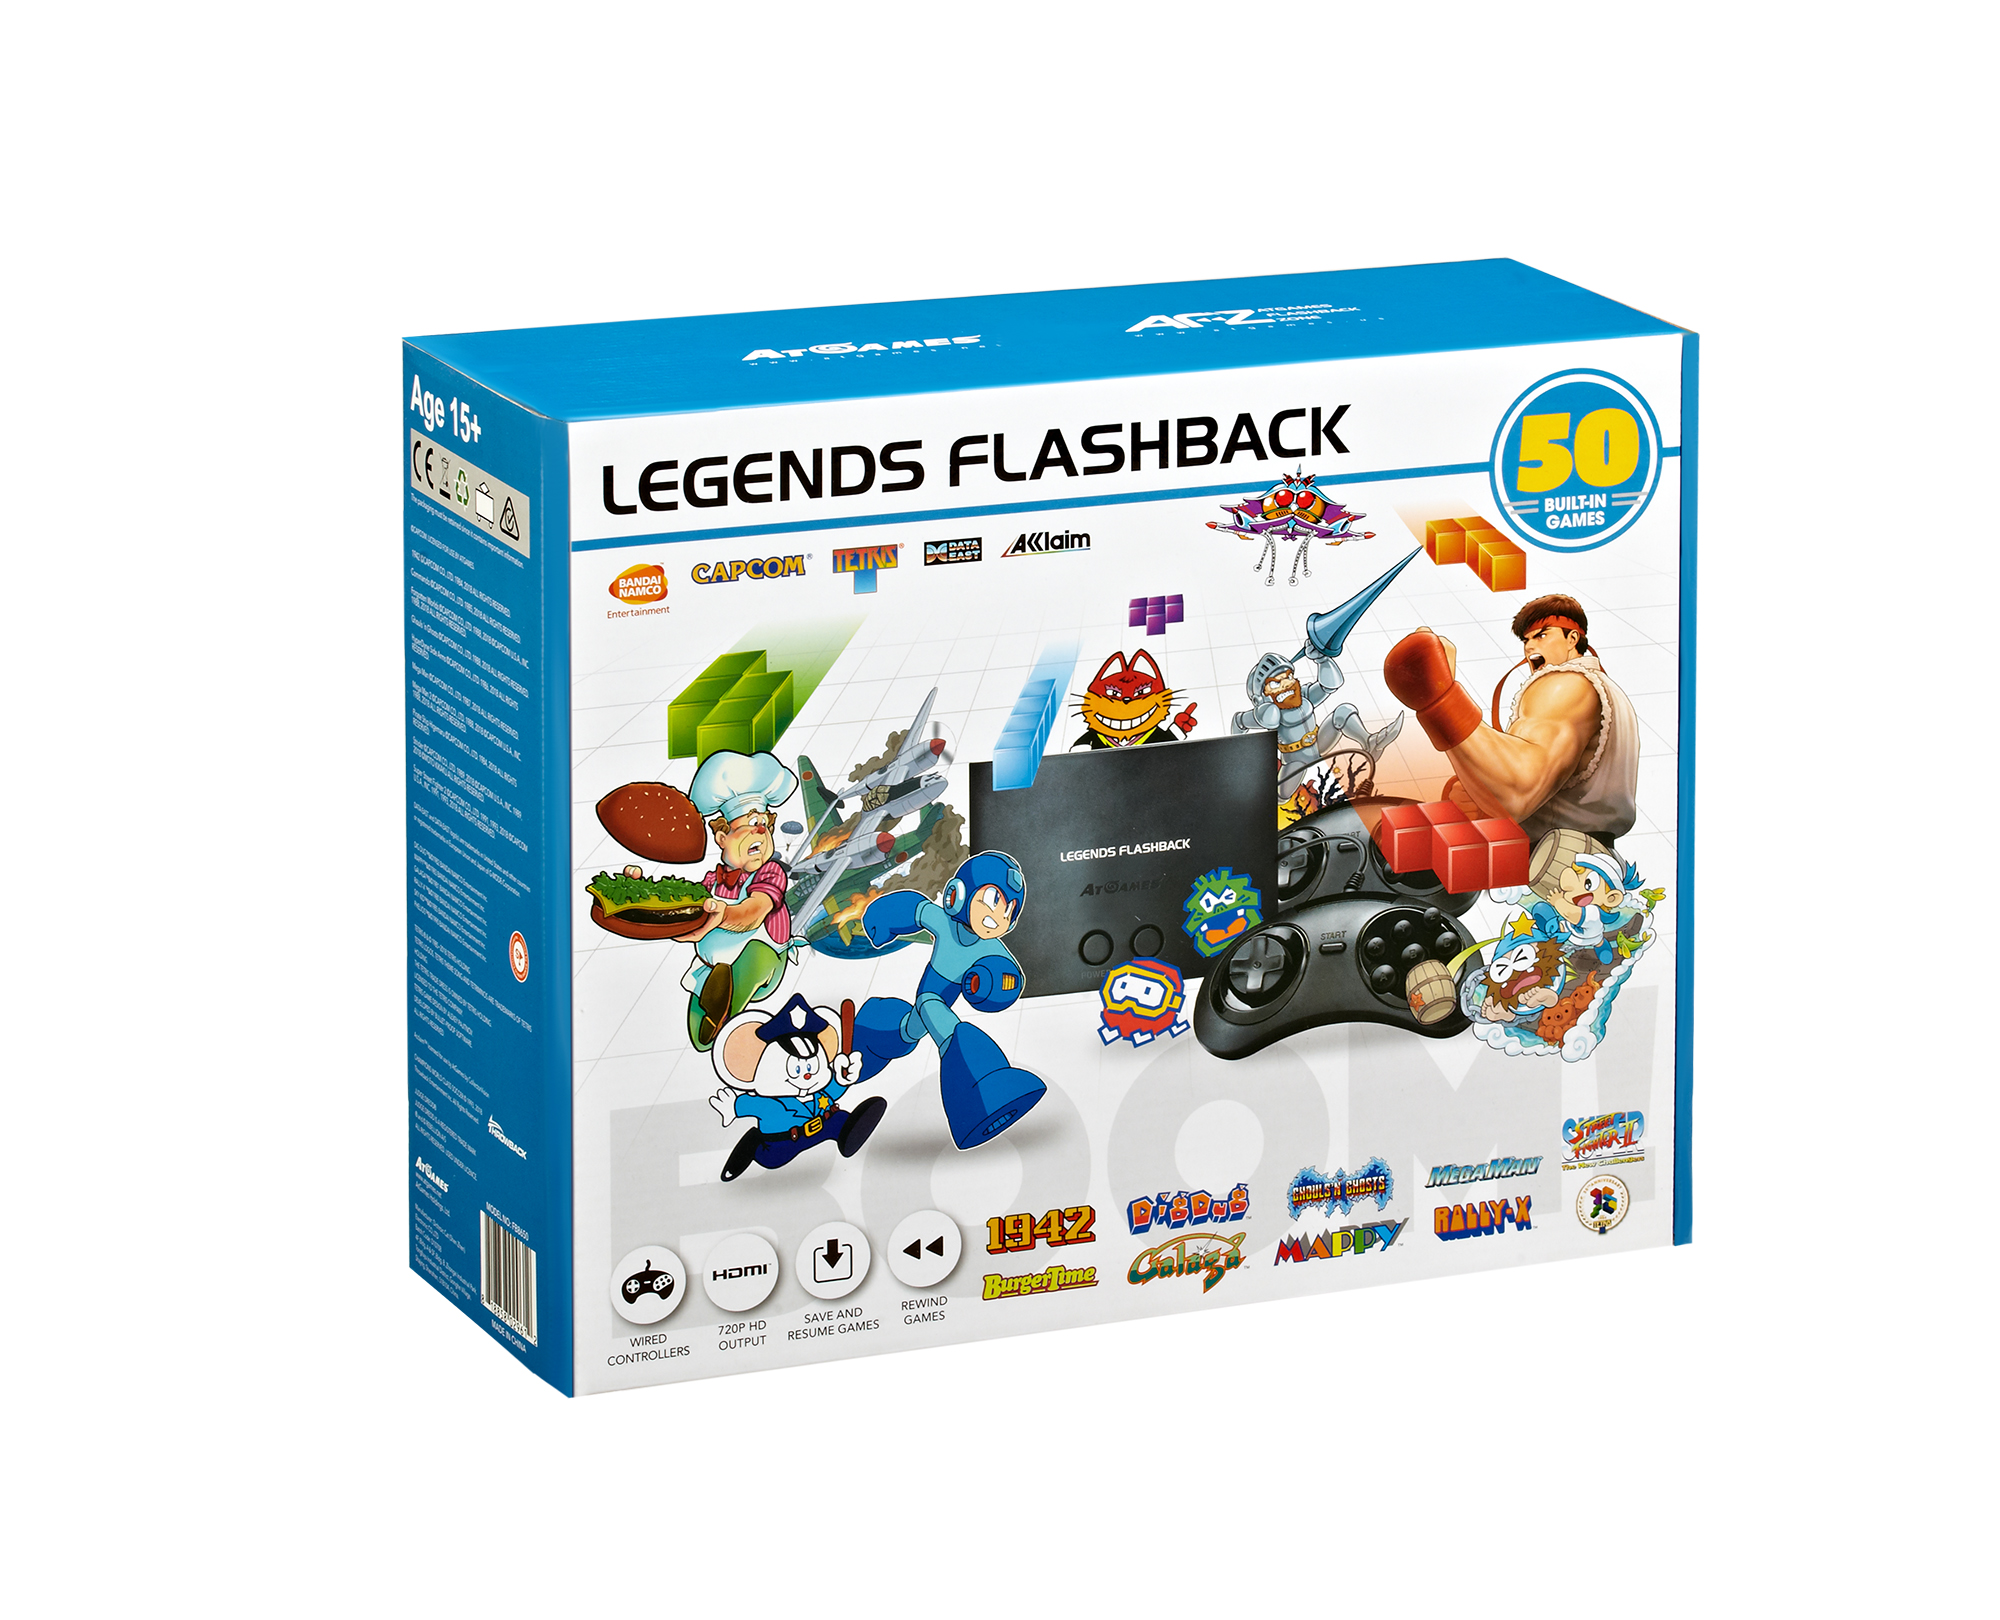 The Official Game List for the AtGames Legends Flashback Console (2018)